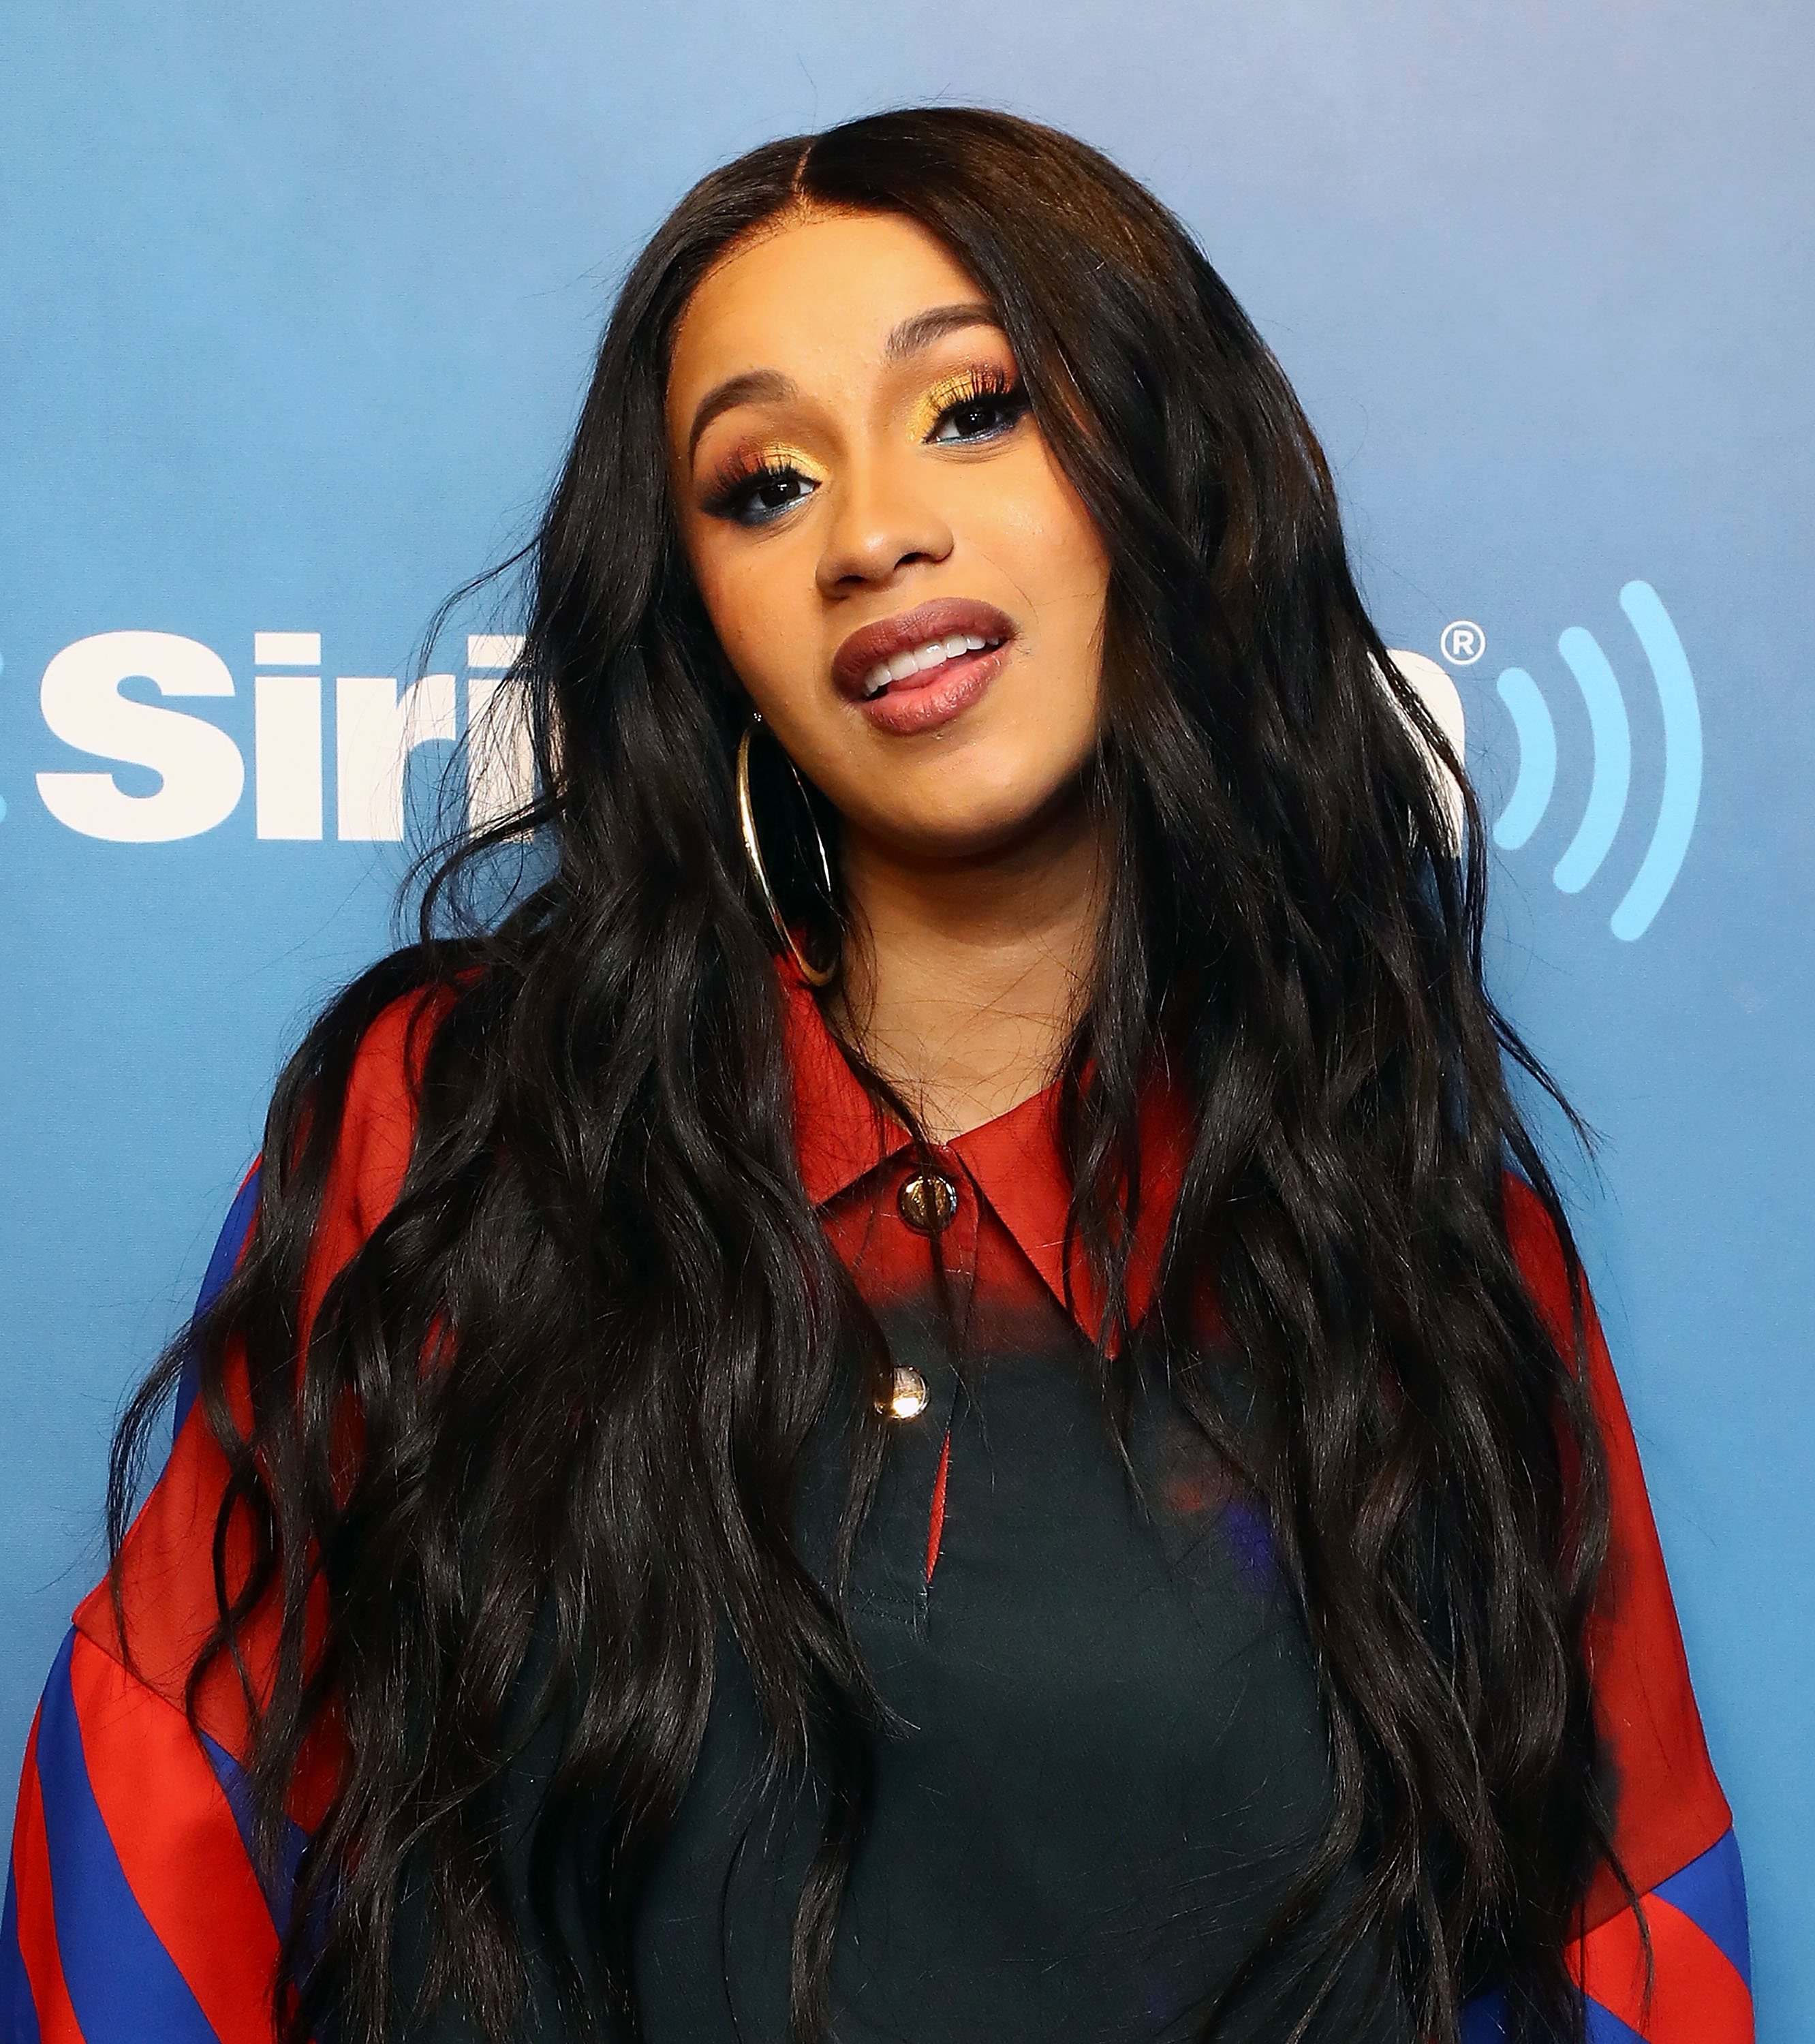 Cardi B visits the SiriusXM Studios on April 10, 2018 in New York City | Photo: Getty Images